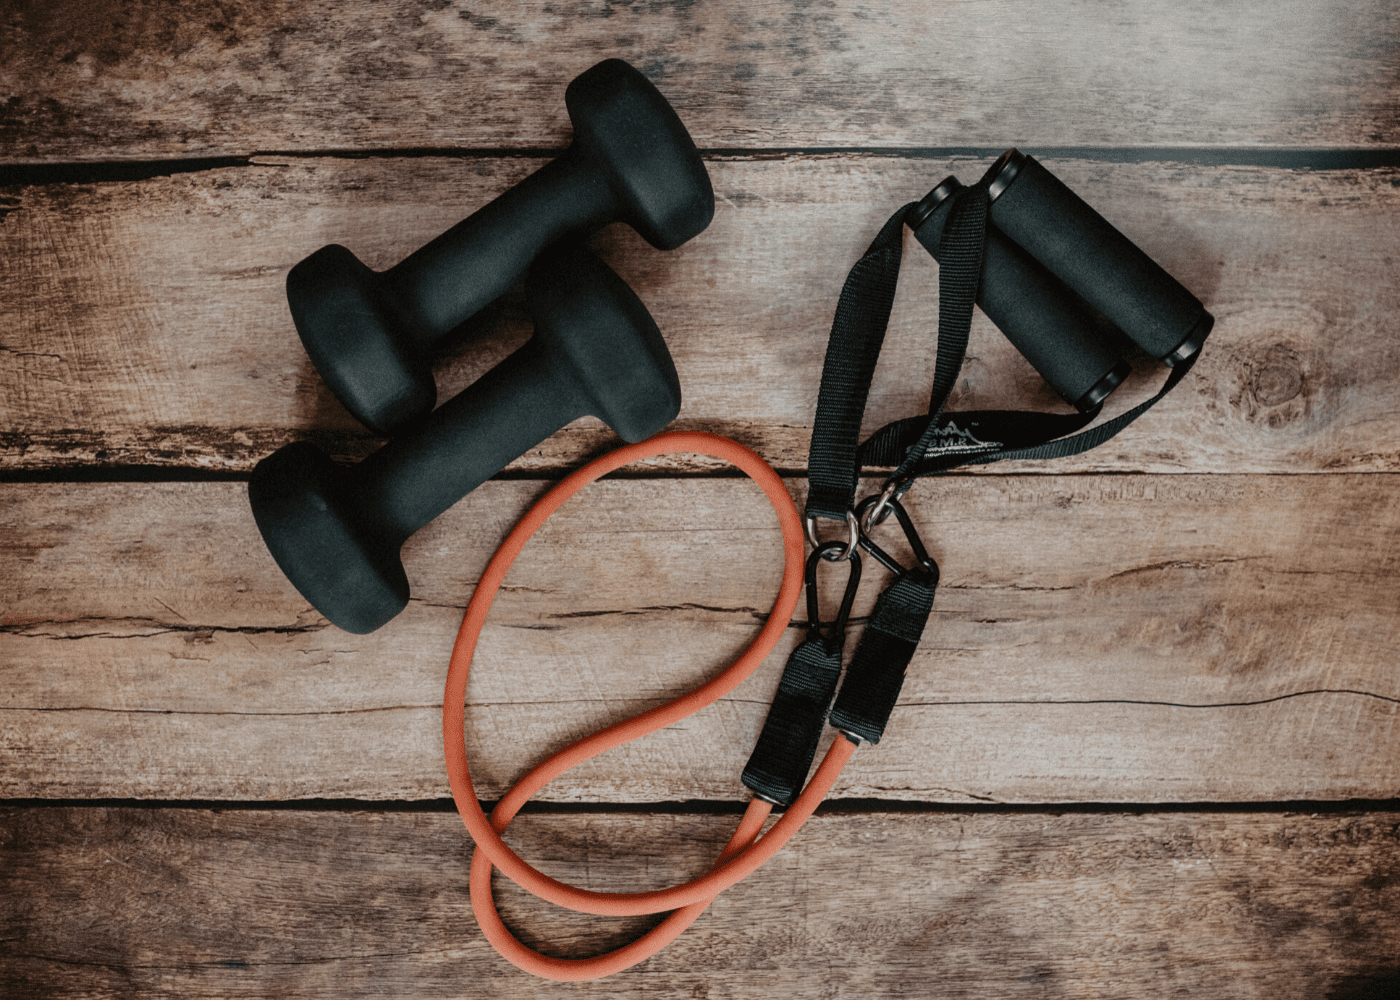 Dumbbells | skipping rope | home gym essentials